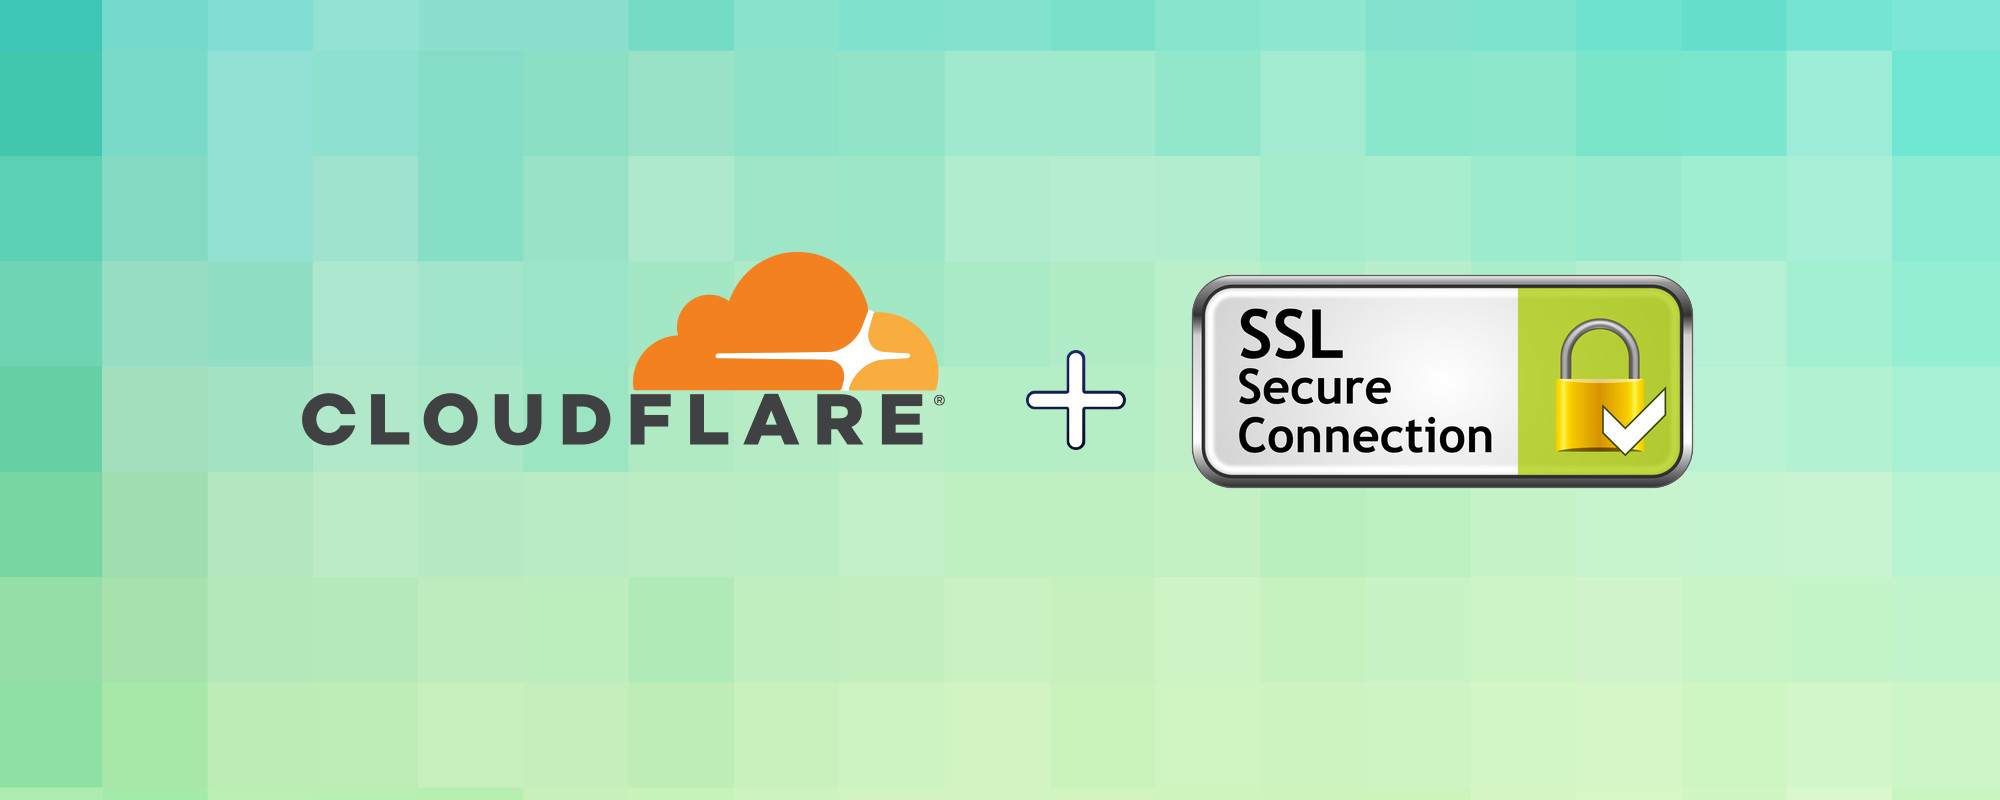 How to set up Cloudflare SSL